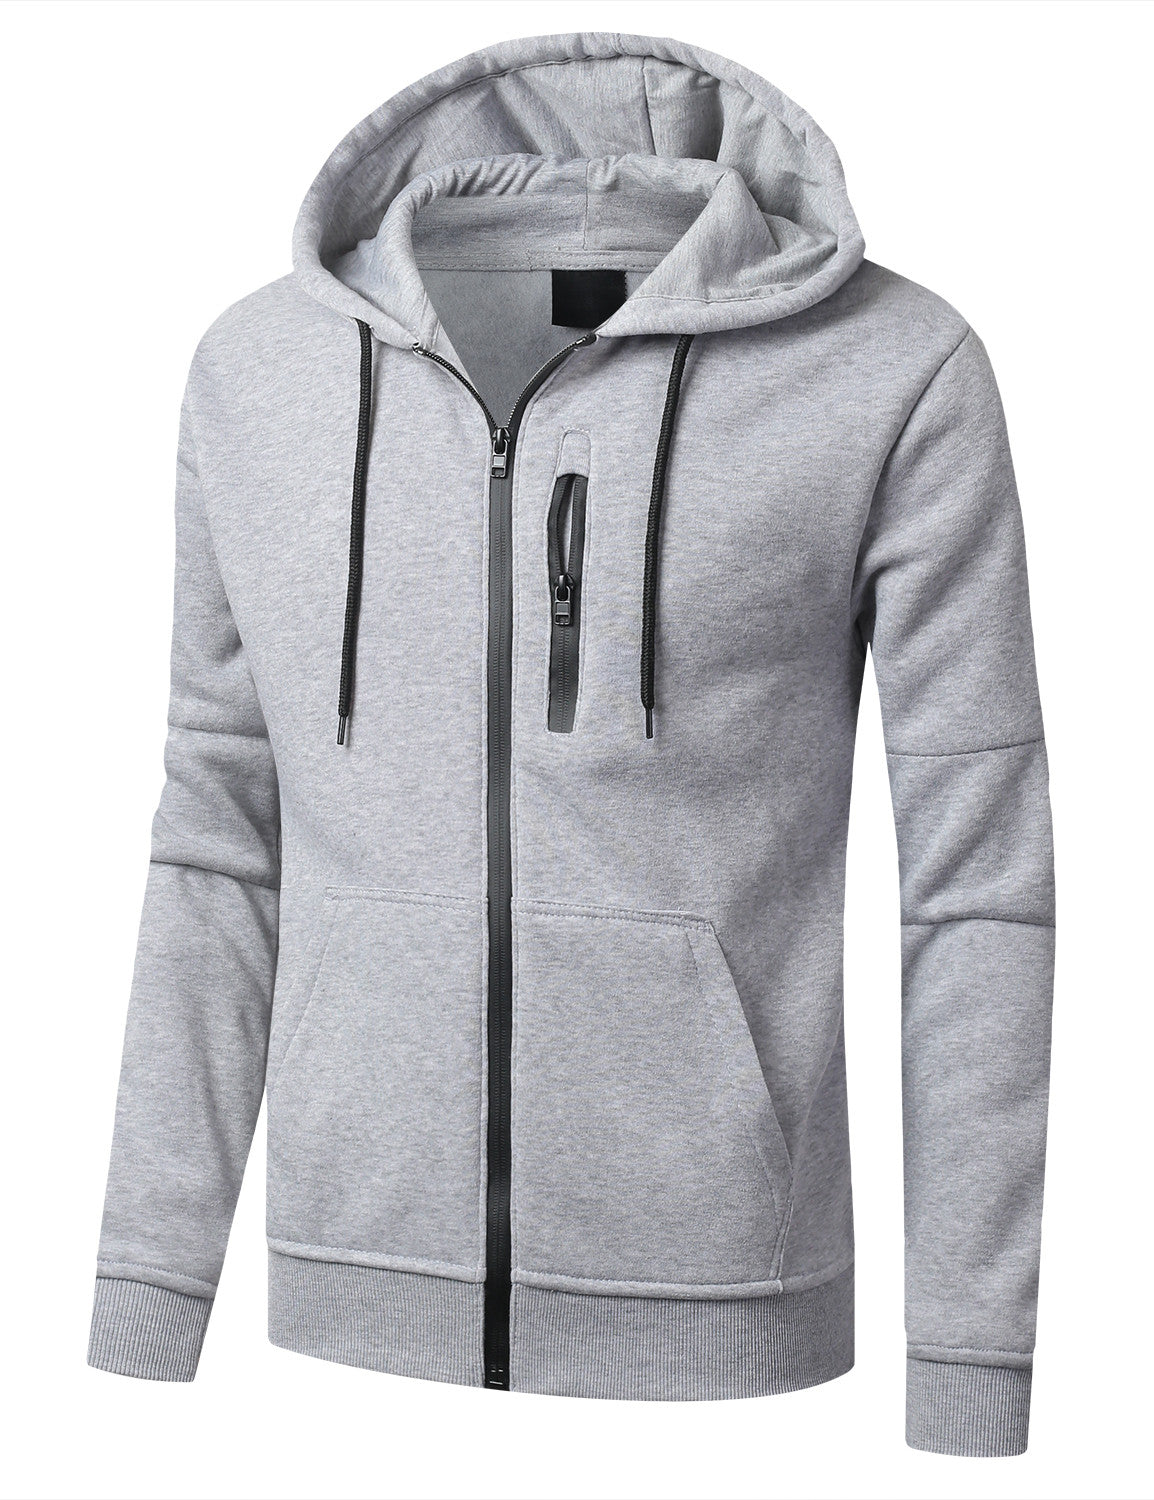 HGRAY Fleece Full Zip Up Hoodie Jacket  - URBANCREWS